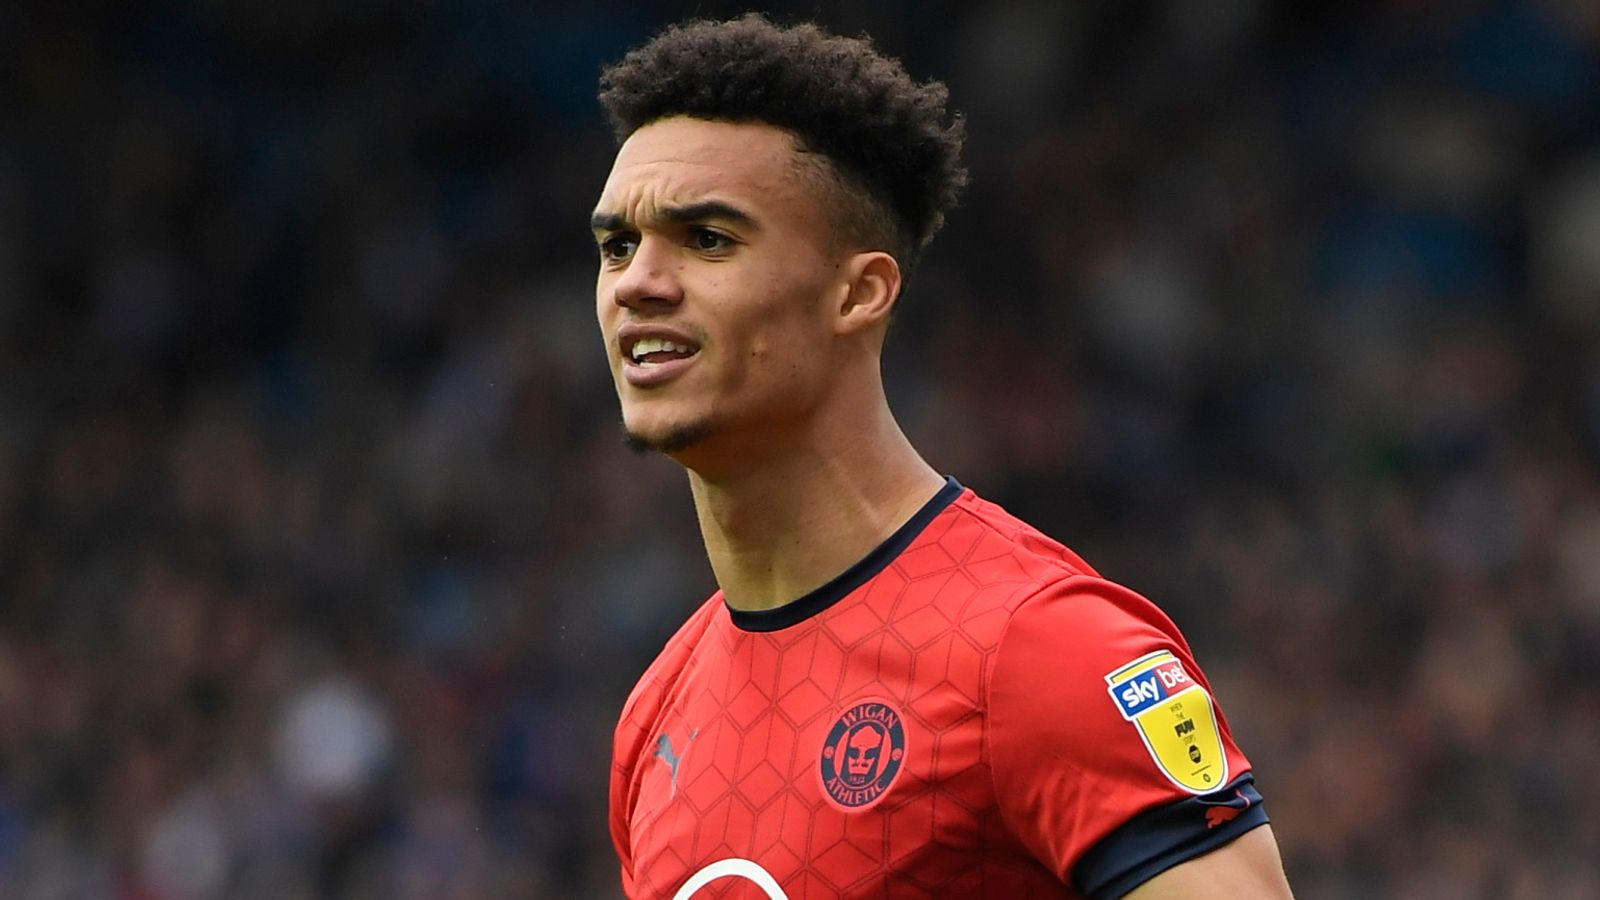 Sheffield United close in on Wigan's Antonee Robinson, four PL clubs want John Lundstram